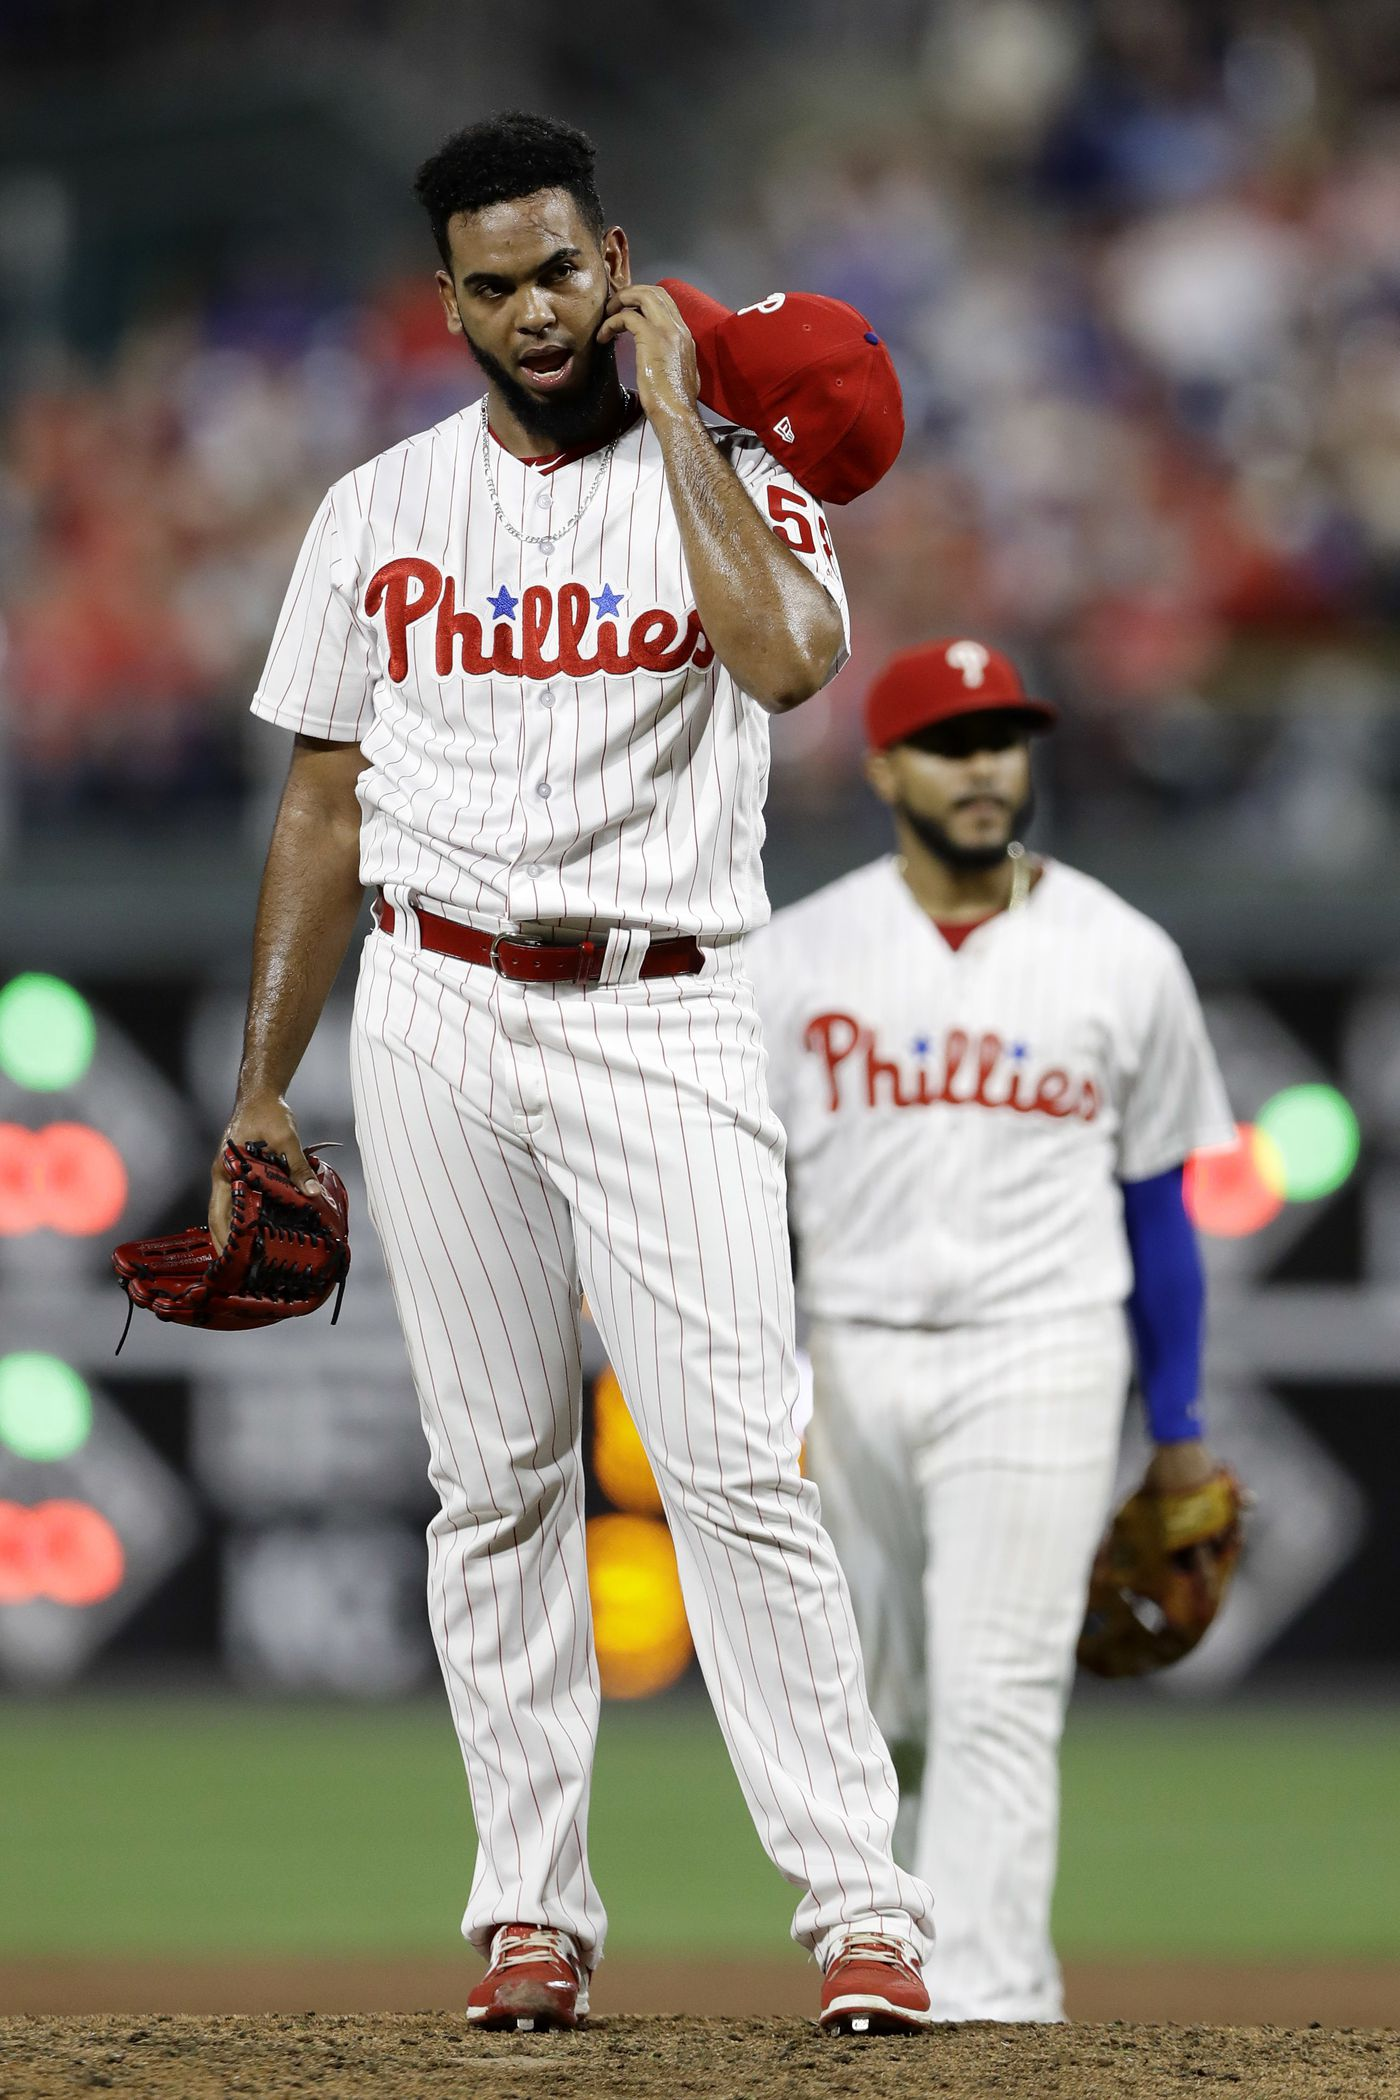 193f275eda2 Reliever Seranthony Dominguez removes his hat and glove before being  removed by manager Gabe Kapler during